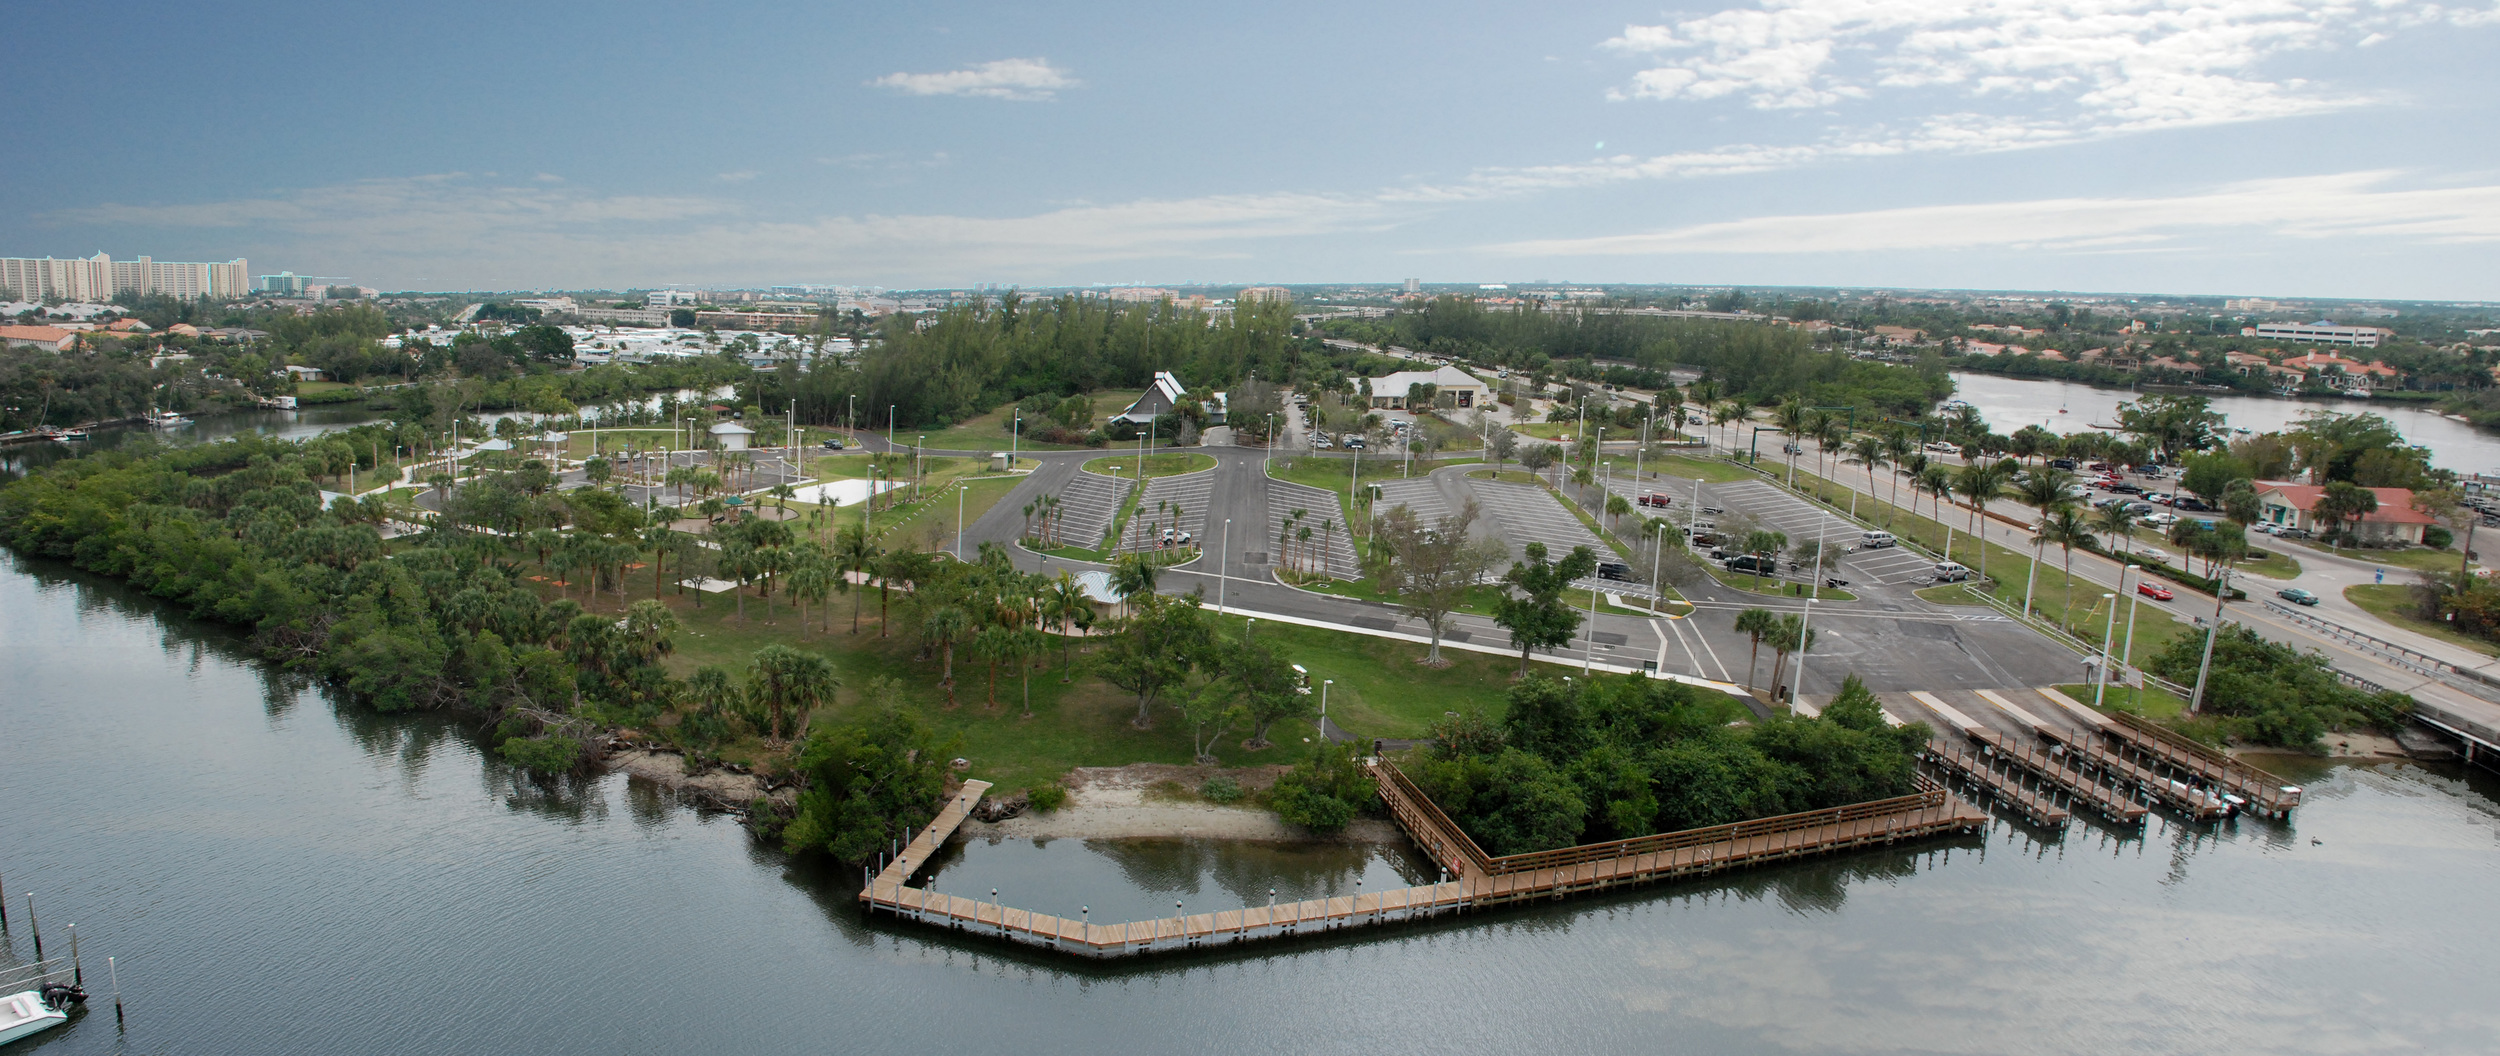 Burt Reynolds Park Palm Beach County Florida birds eye aerial.jpg